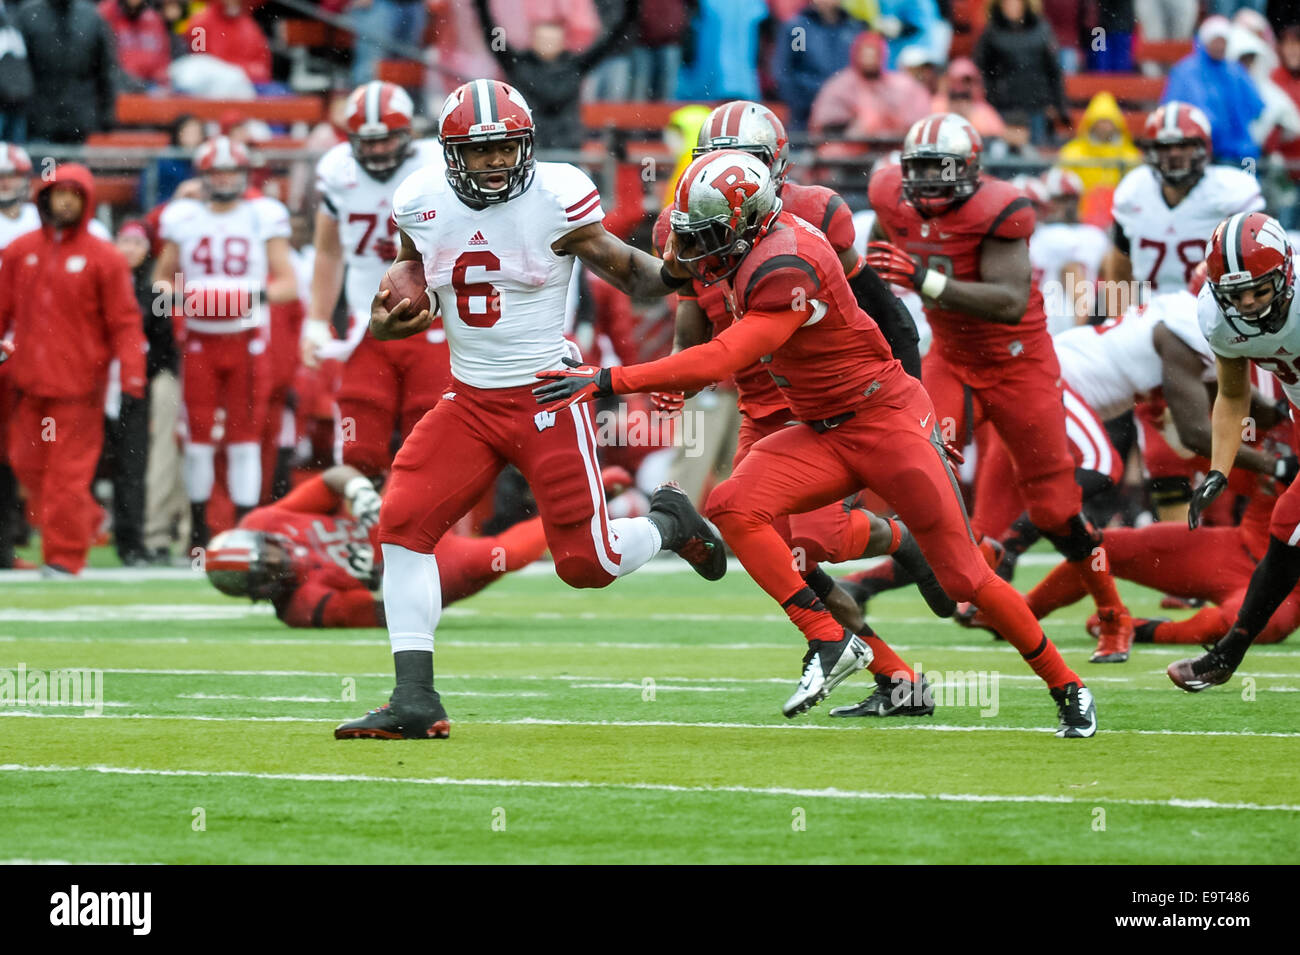 Piscataway, New Jersey, USA. 1st Nov, 2014. Wisconsin running back, COREY CLEMENT (6), stiff arms Rutgers defensive - Stock Image